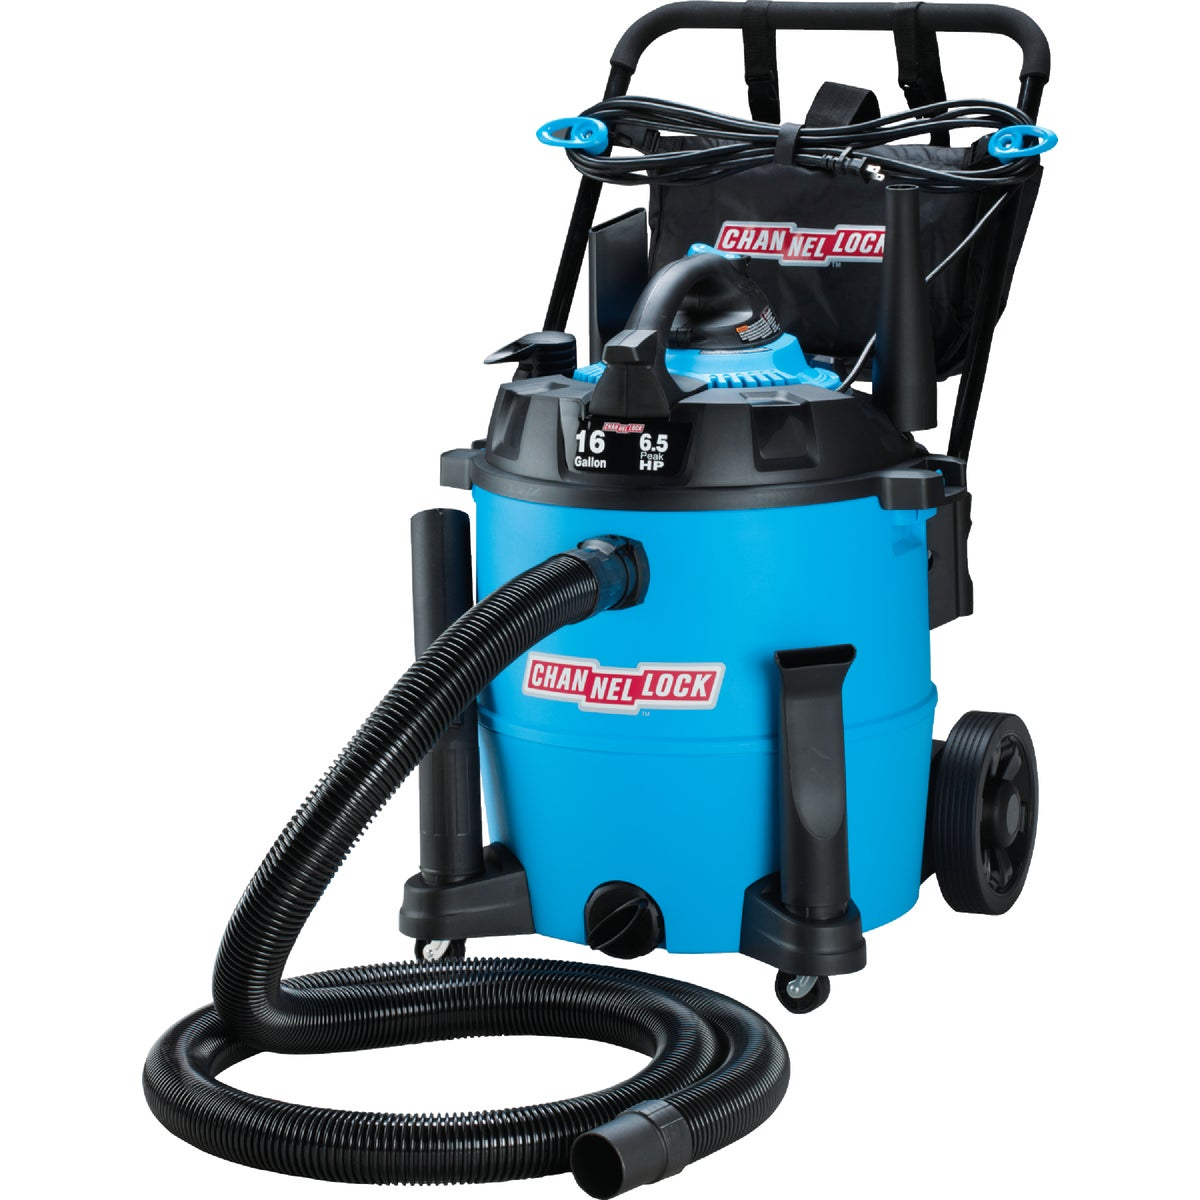 16GAL 6.5HP WET/DRY VAC